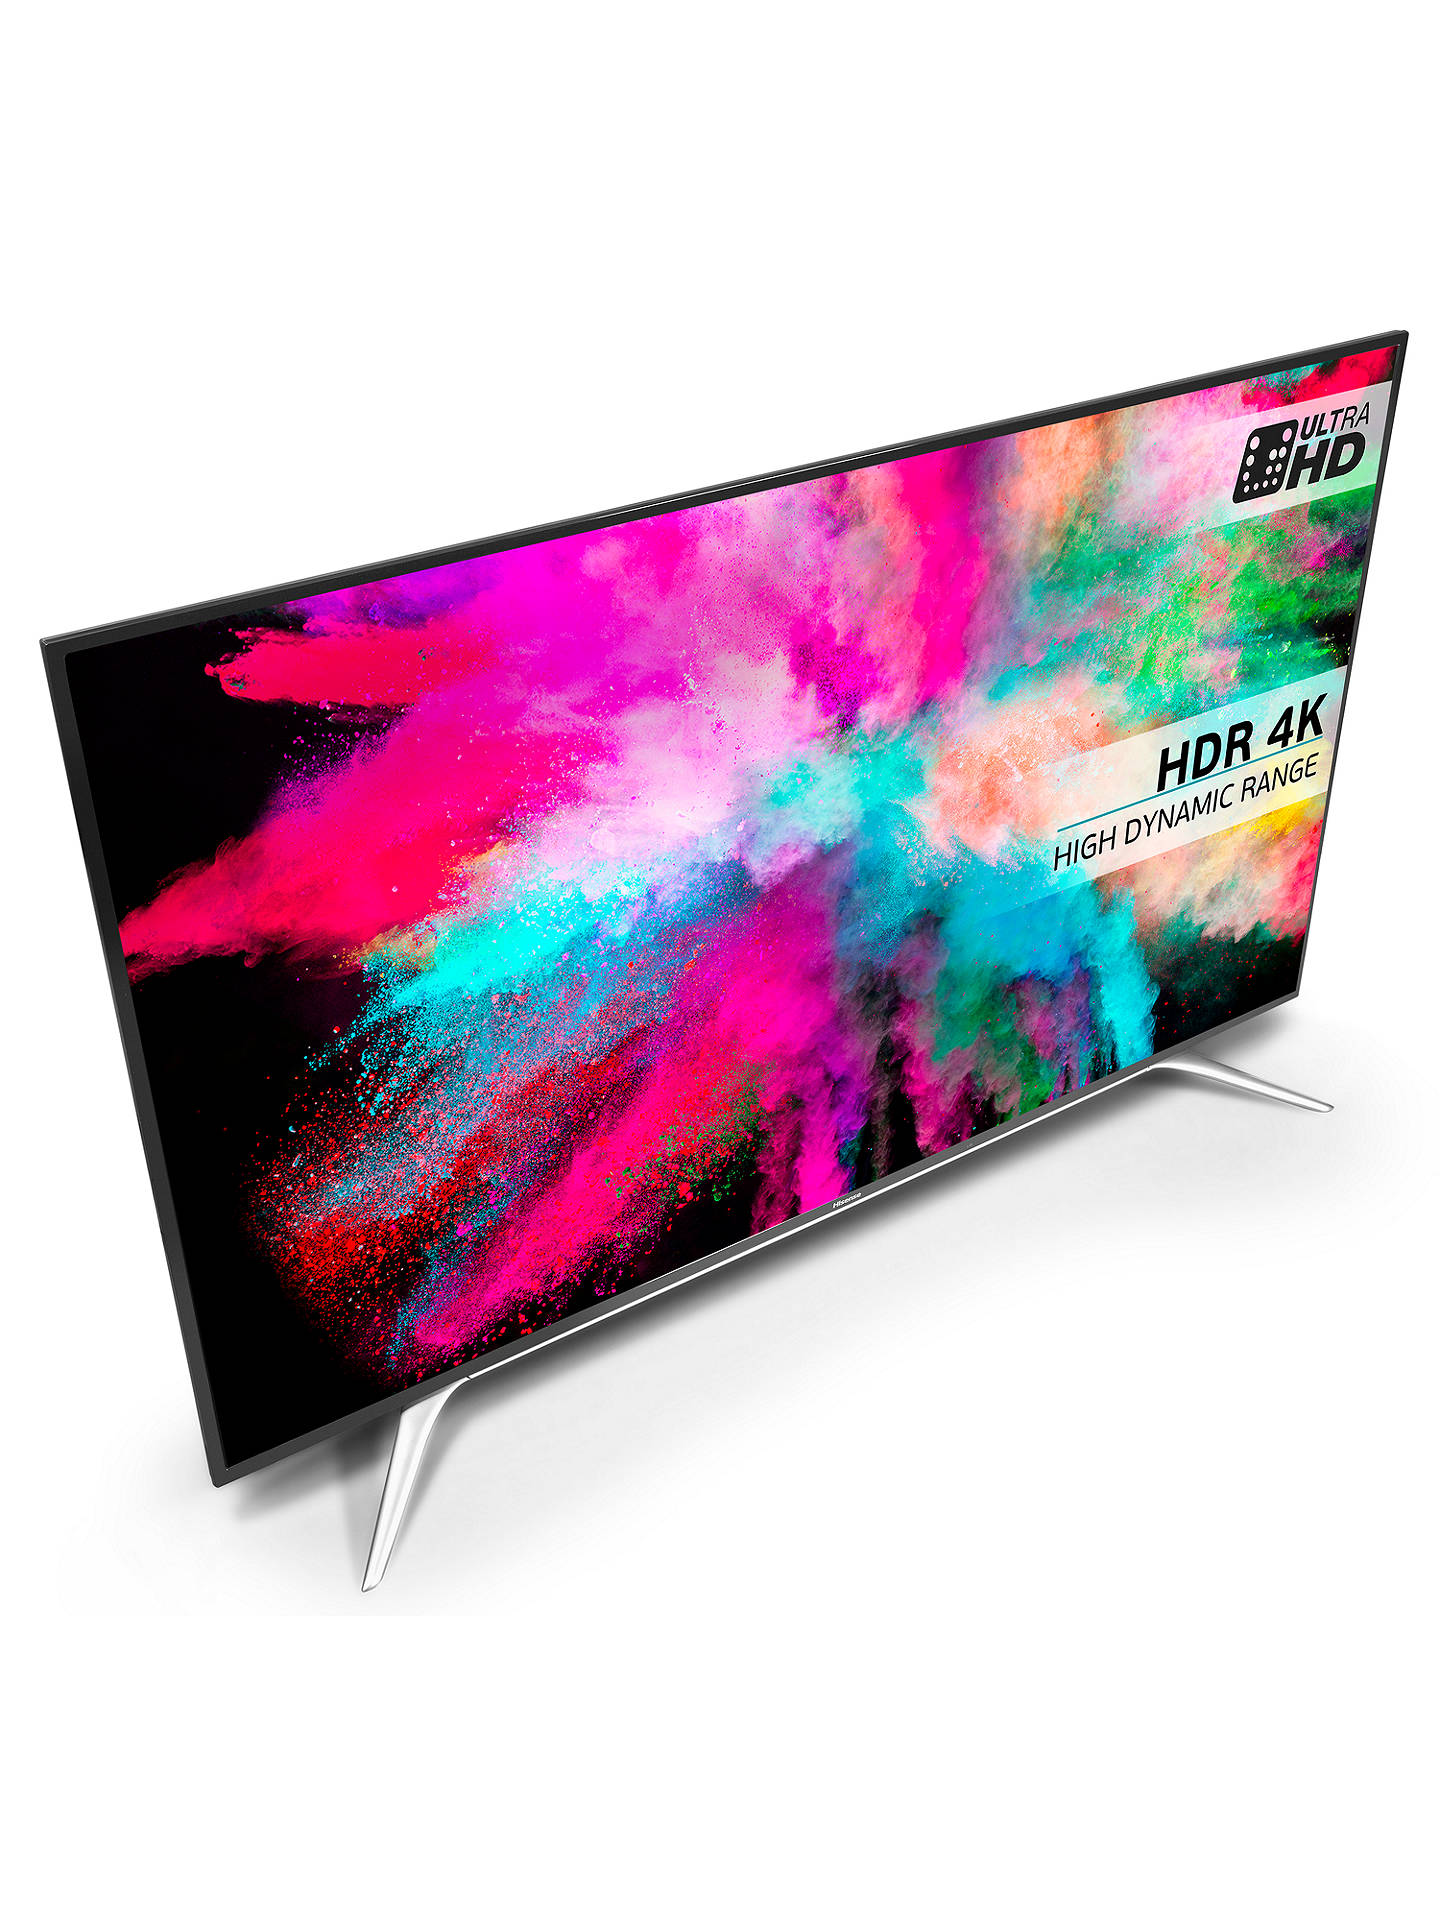 Hisense 65K5510 LED HDR 4K Ultra HD Smart TV, 65